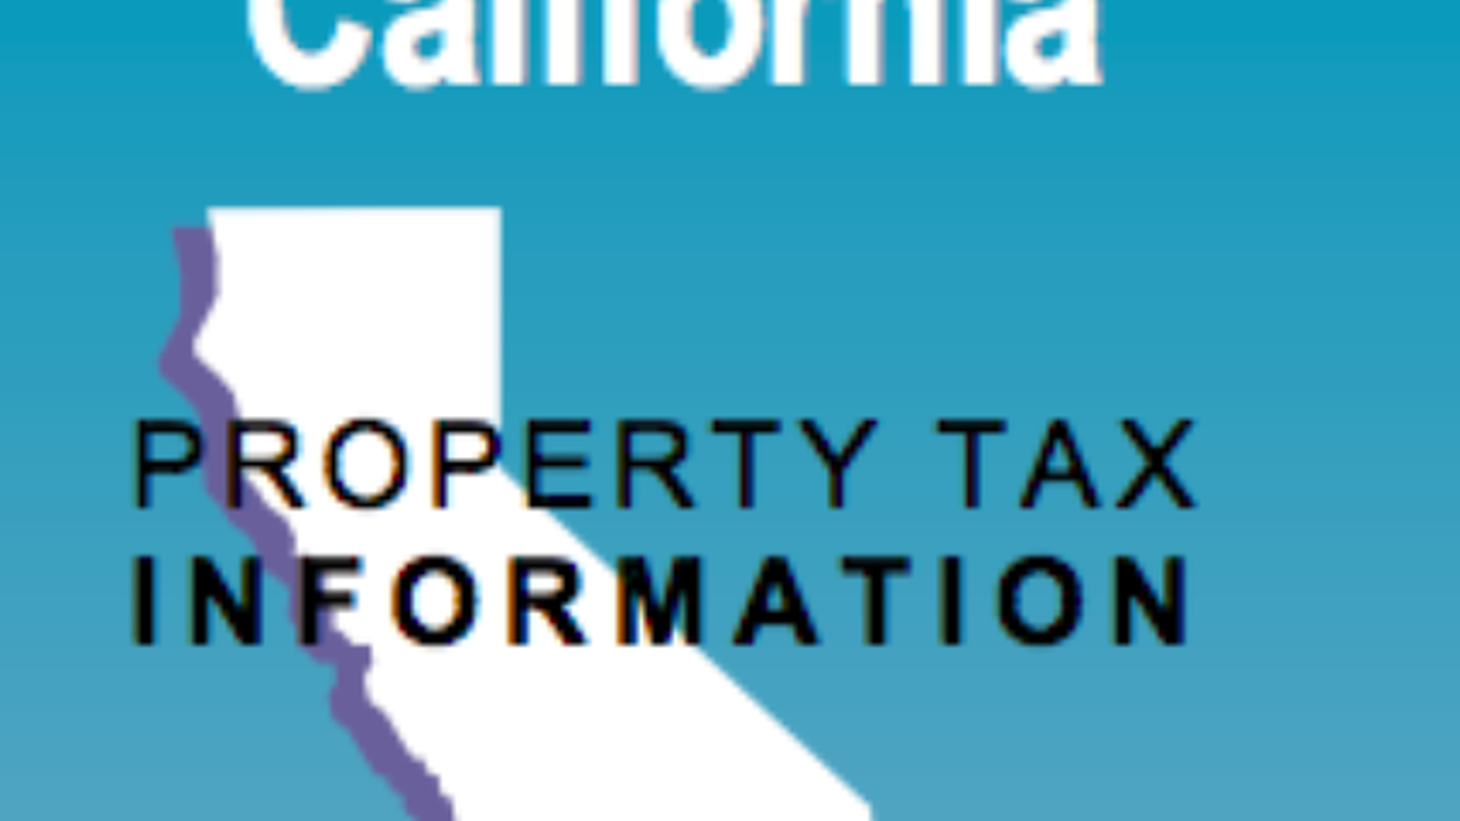 There's a new proposal to expand property tax benefits enjoyed by California homeowners under Proposition 13. Maybe it doesn't go far enough.